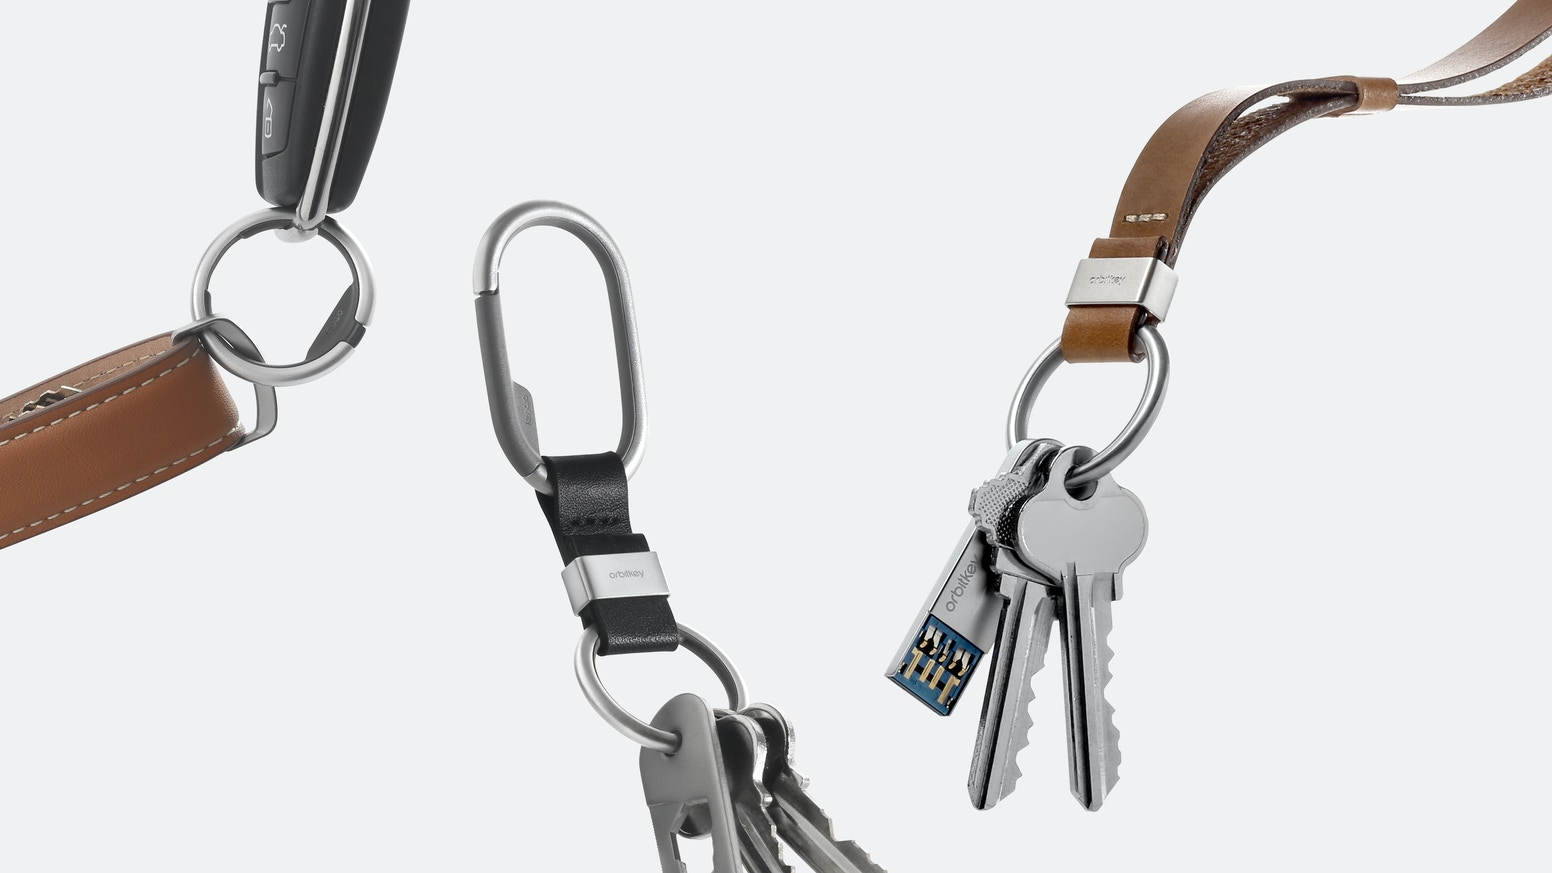 Orbitkey Ring, Clip and Strap - The Keyring, Reinvented.